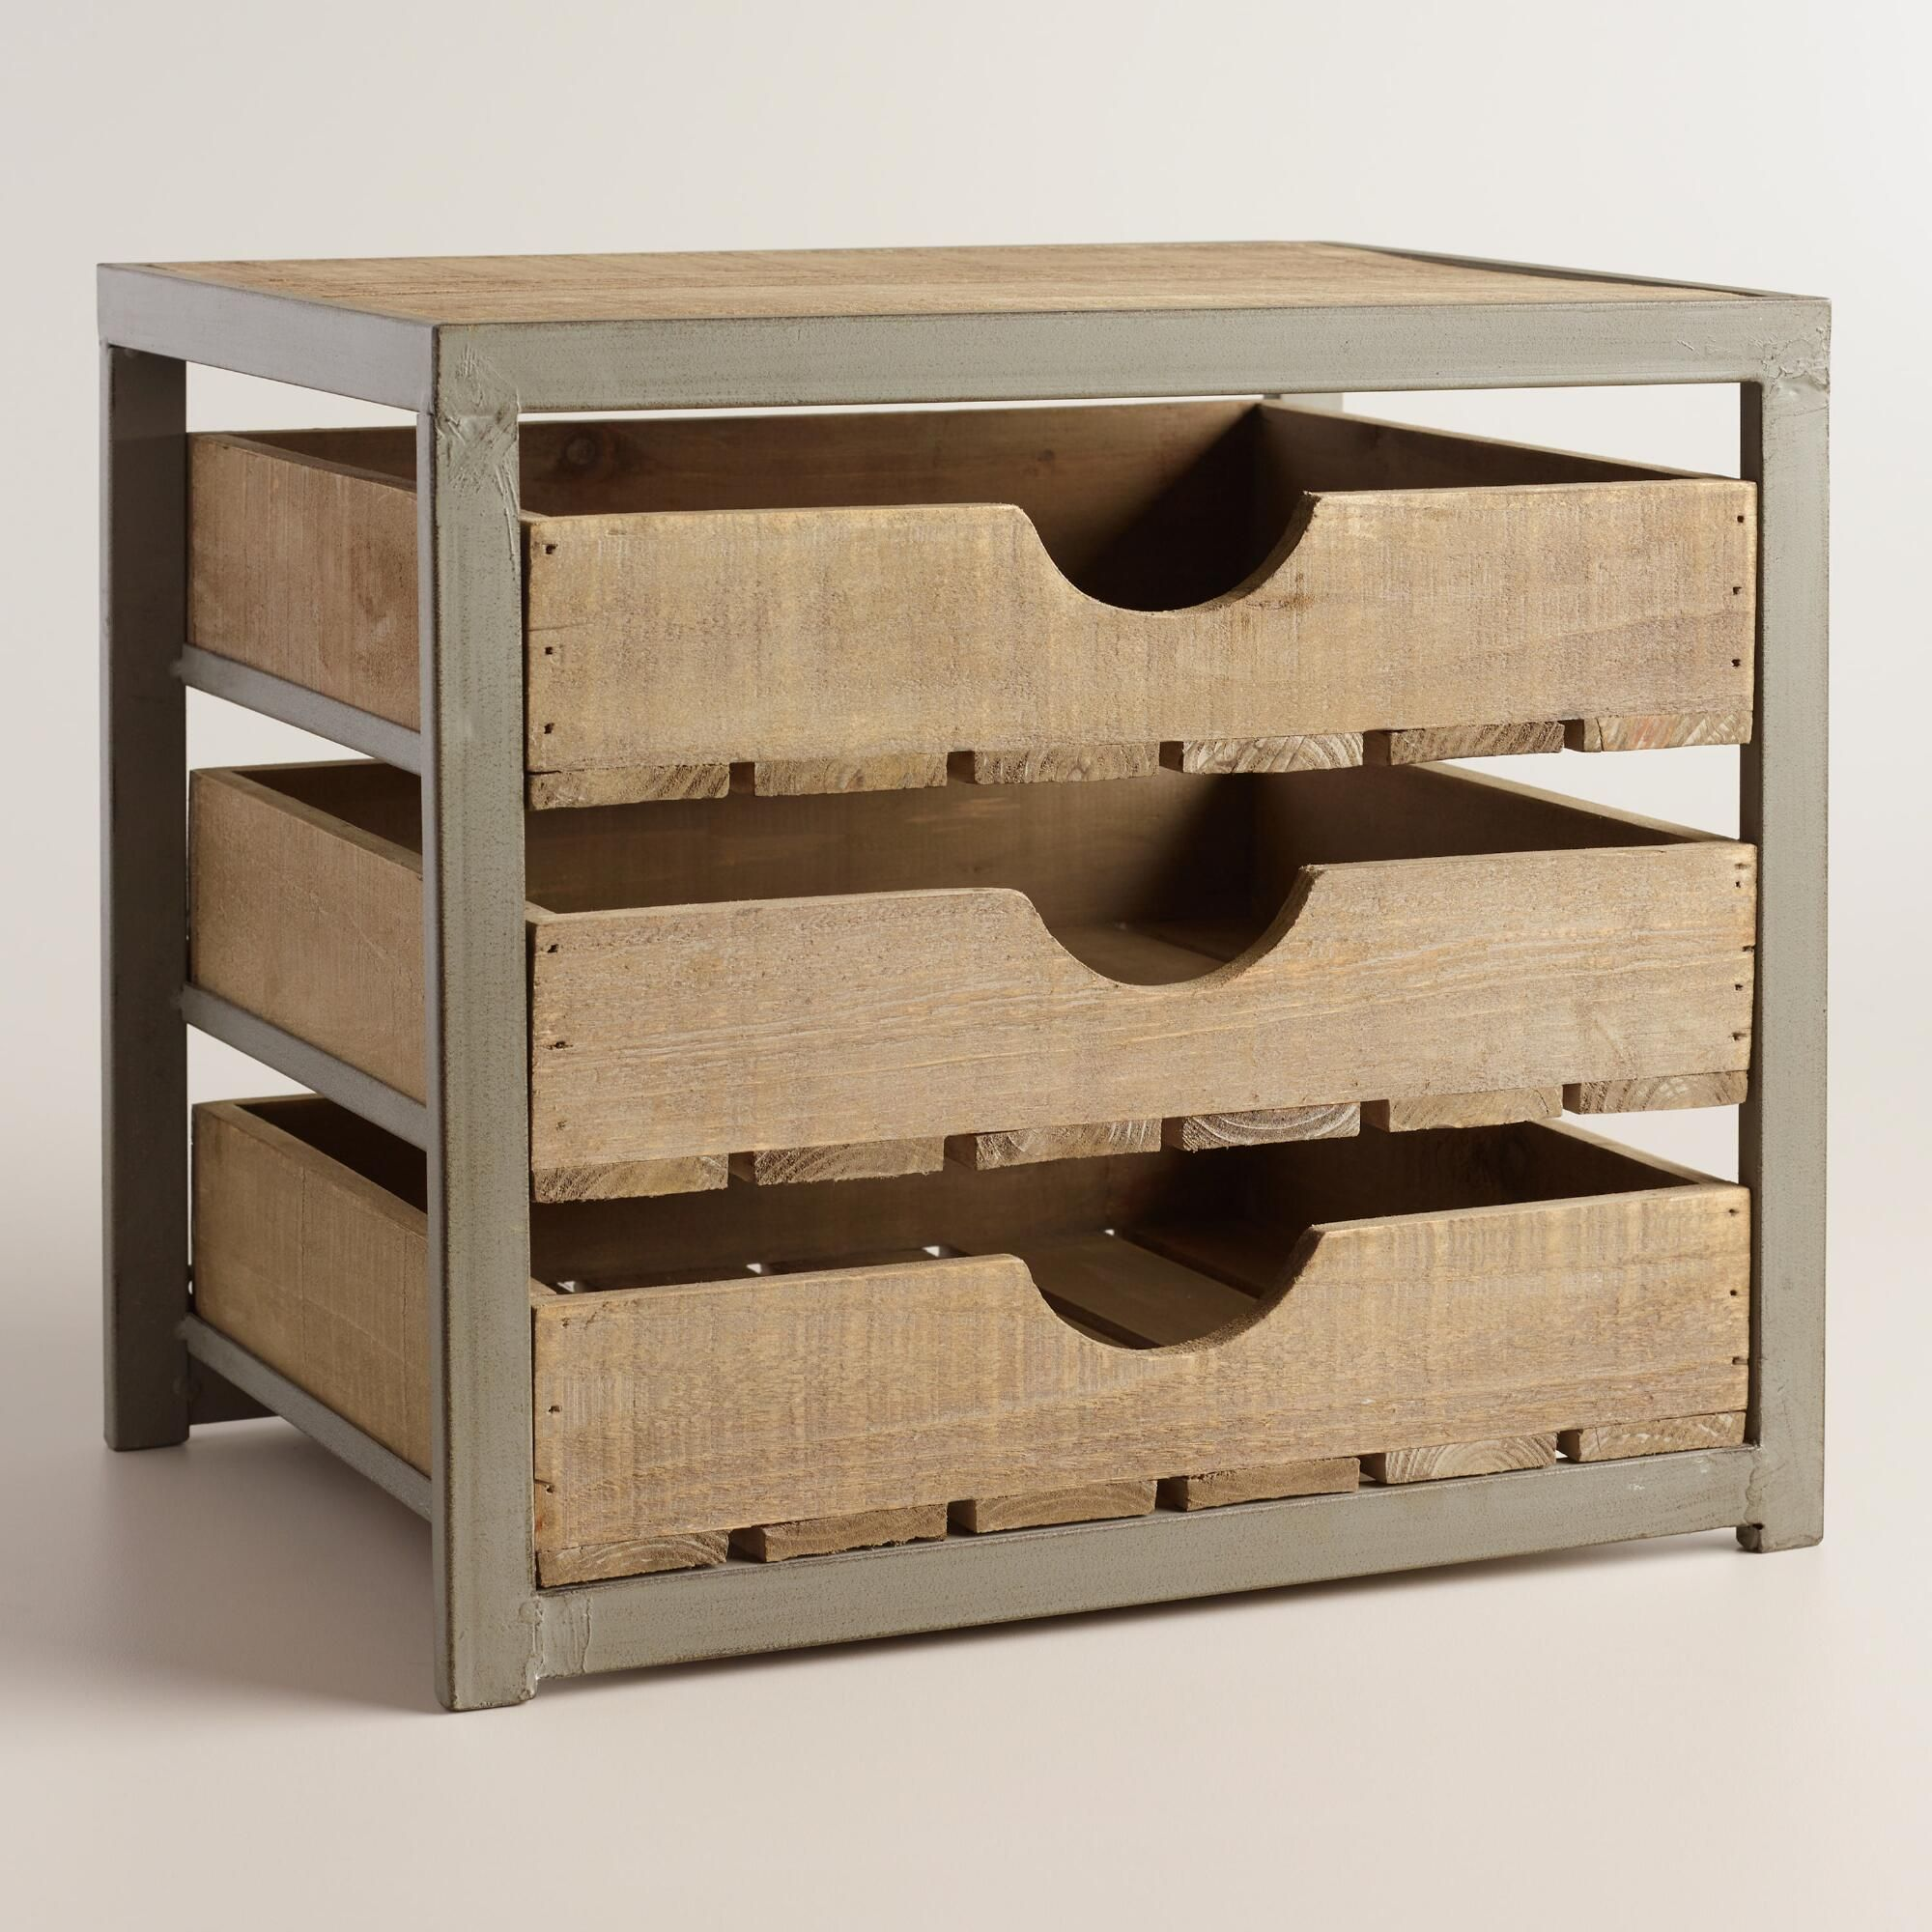 Wooden Drawers Give Your Desktop Storage A Rustic Appeal With Our Apple